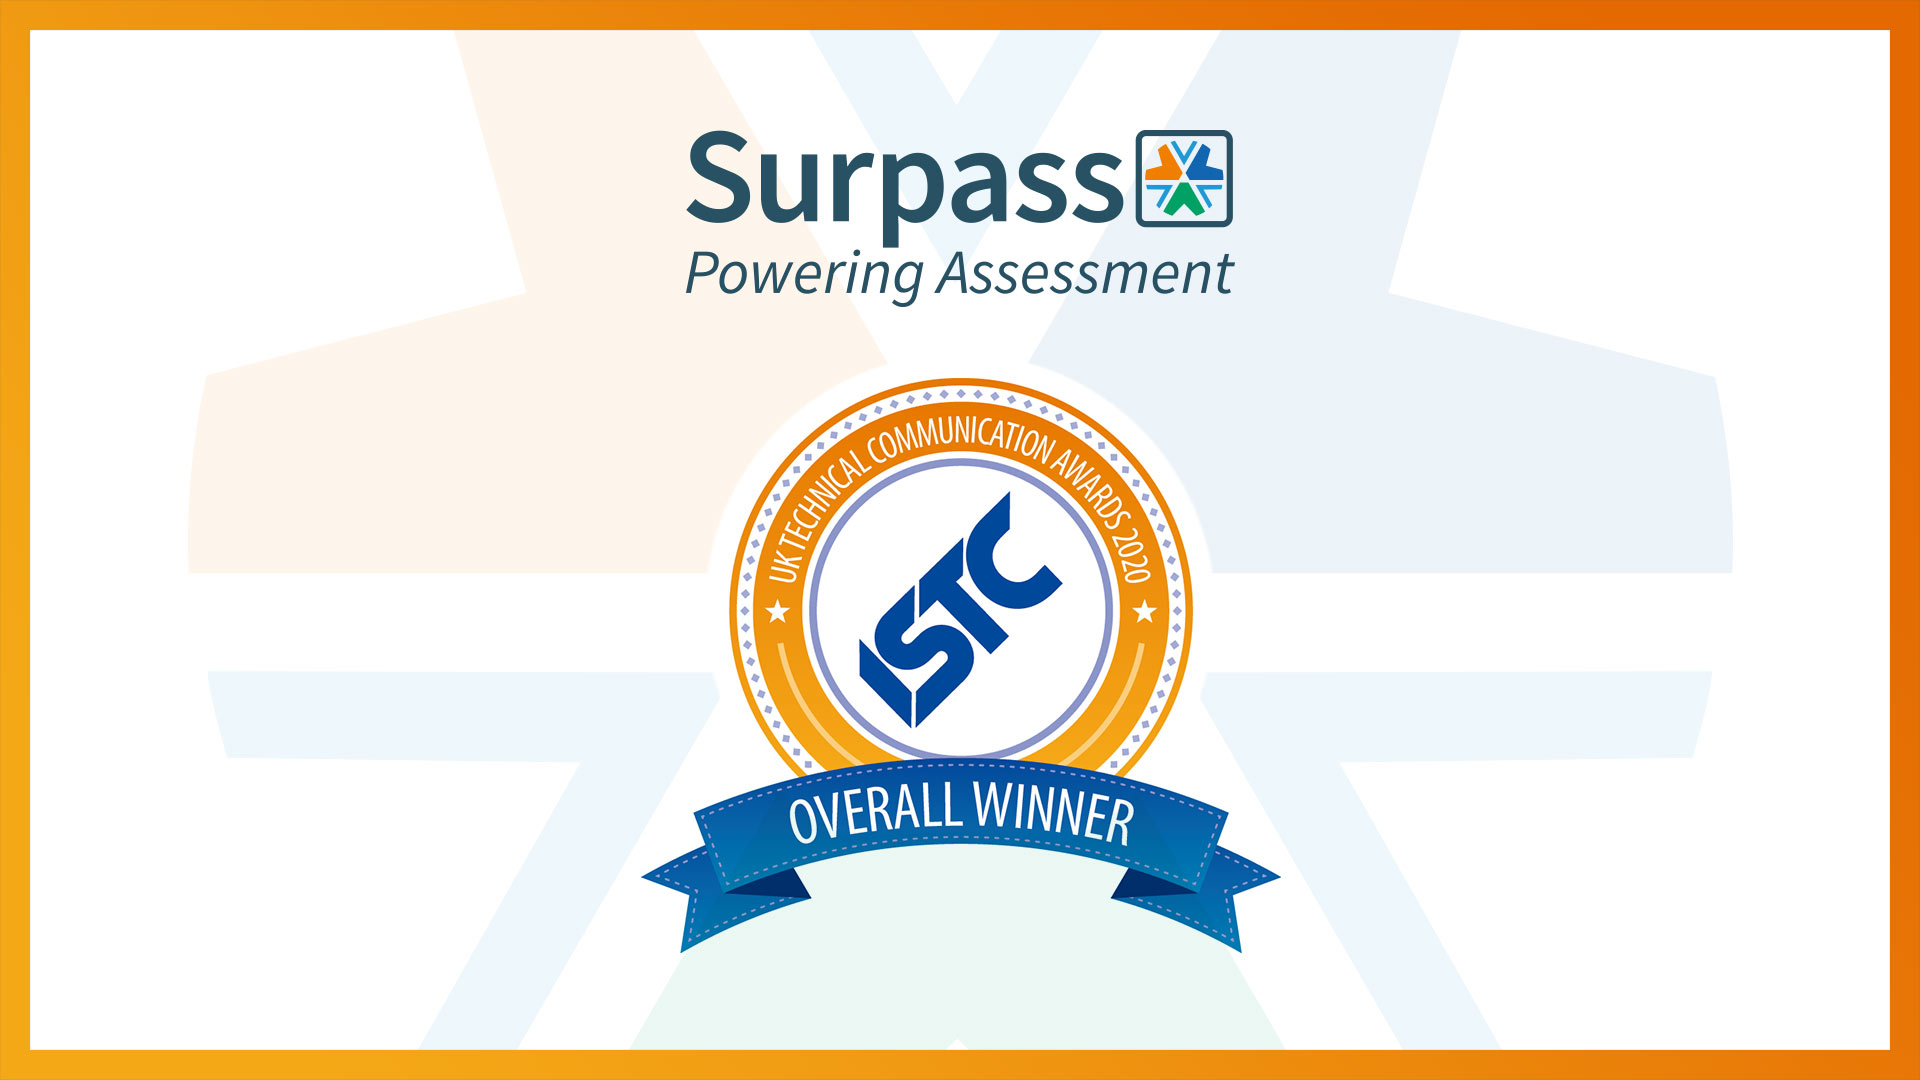 Surpass overall winner of the ISTC UK Technical Communication Awards